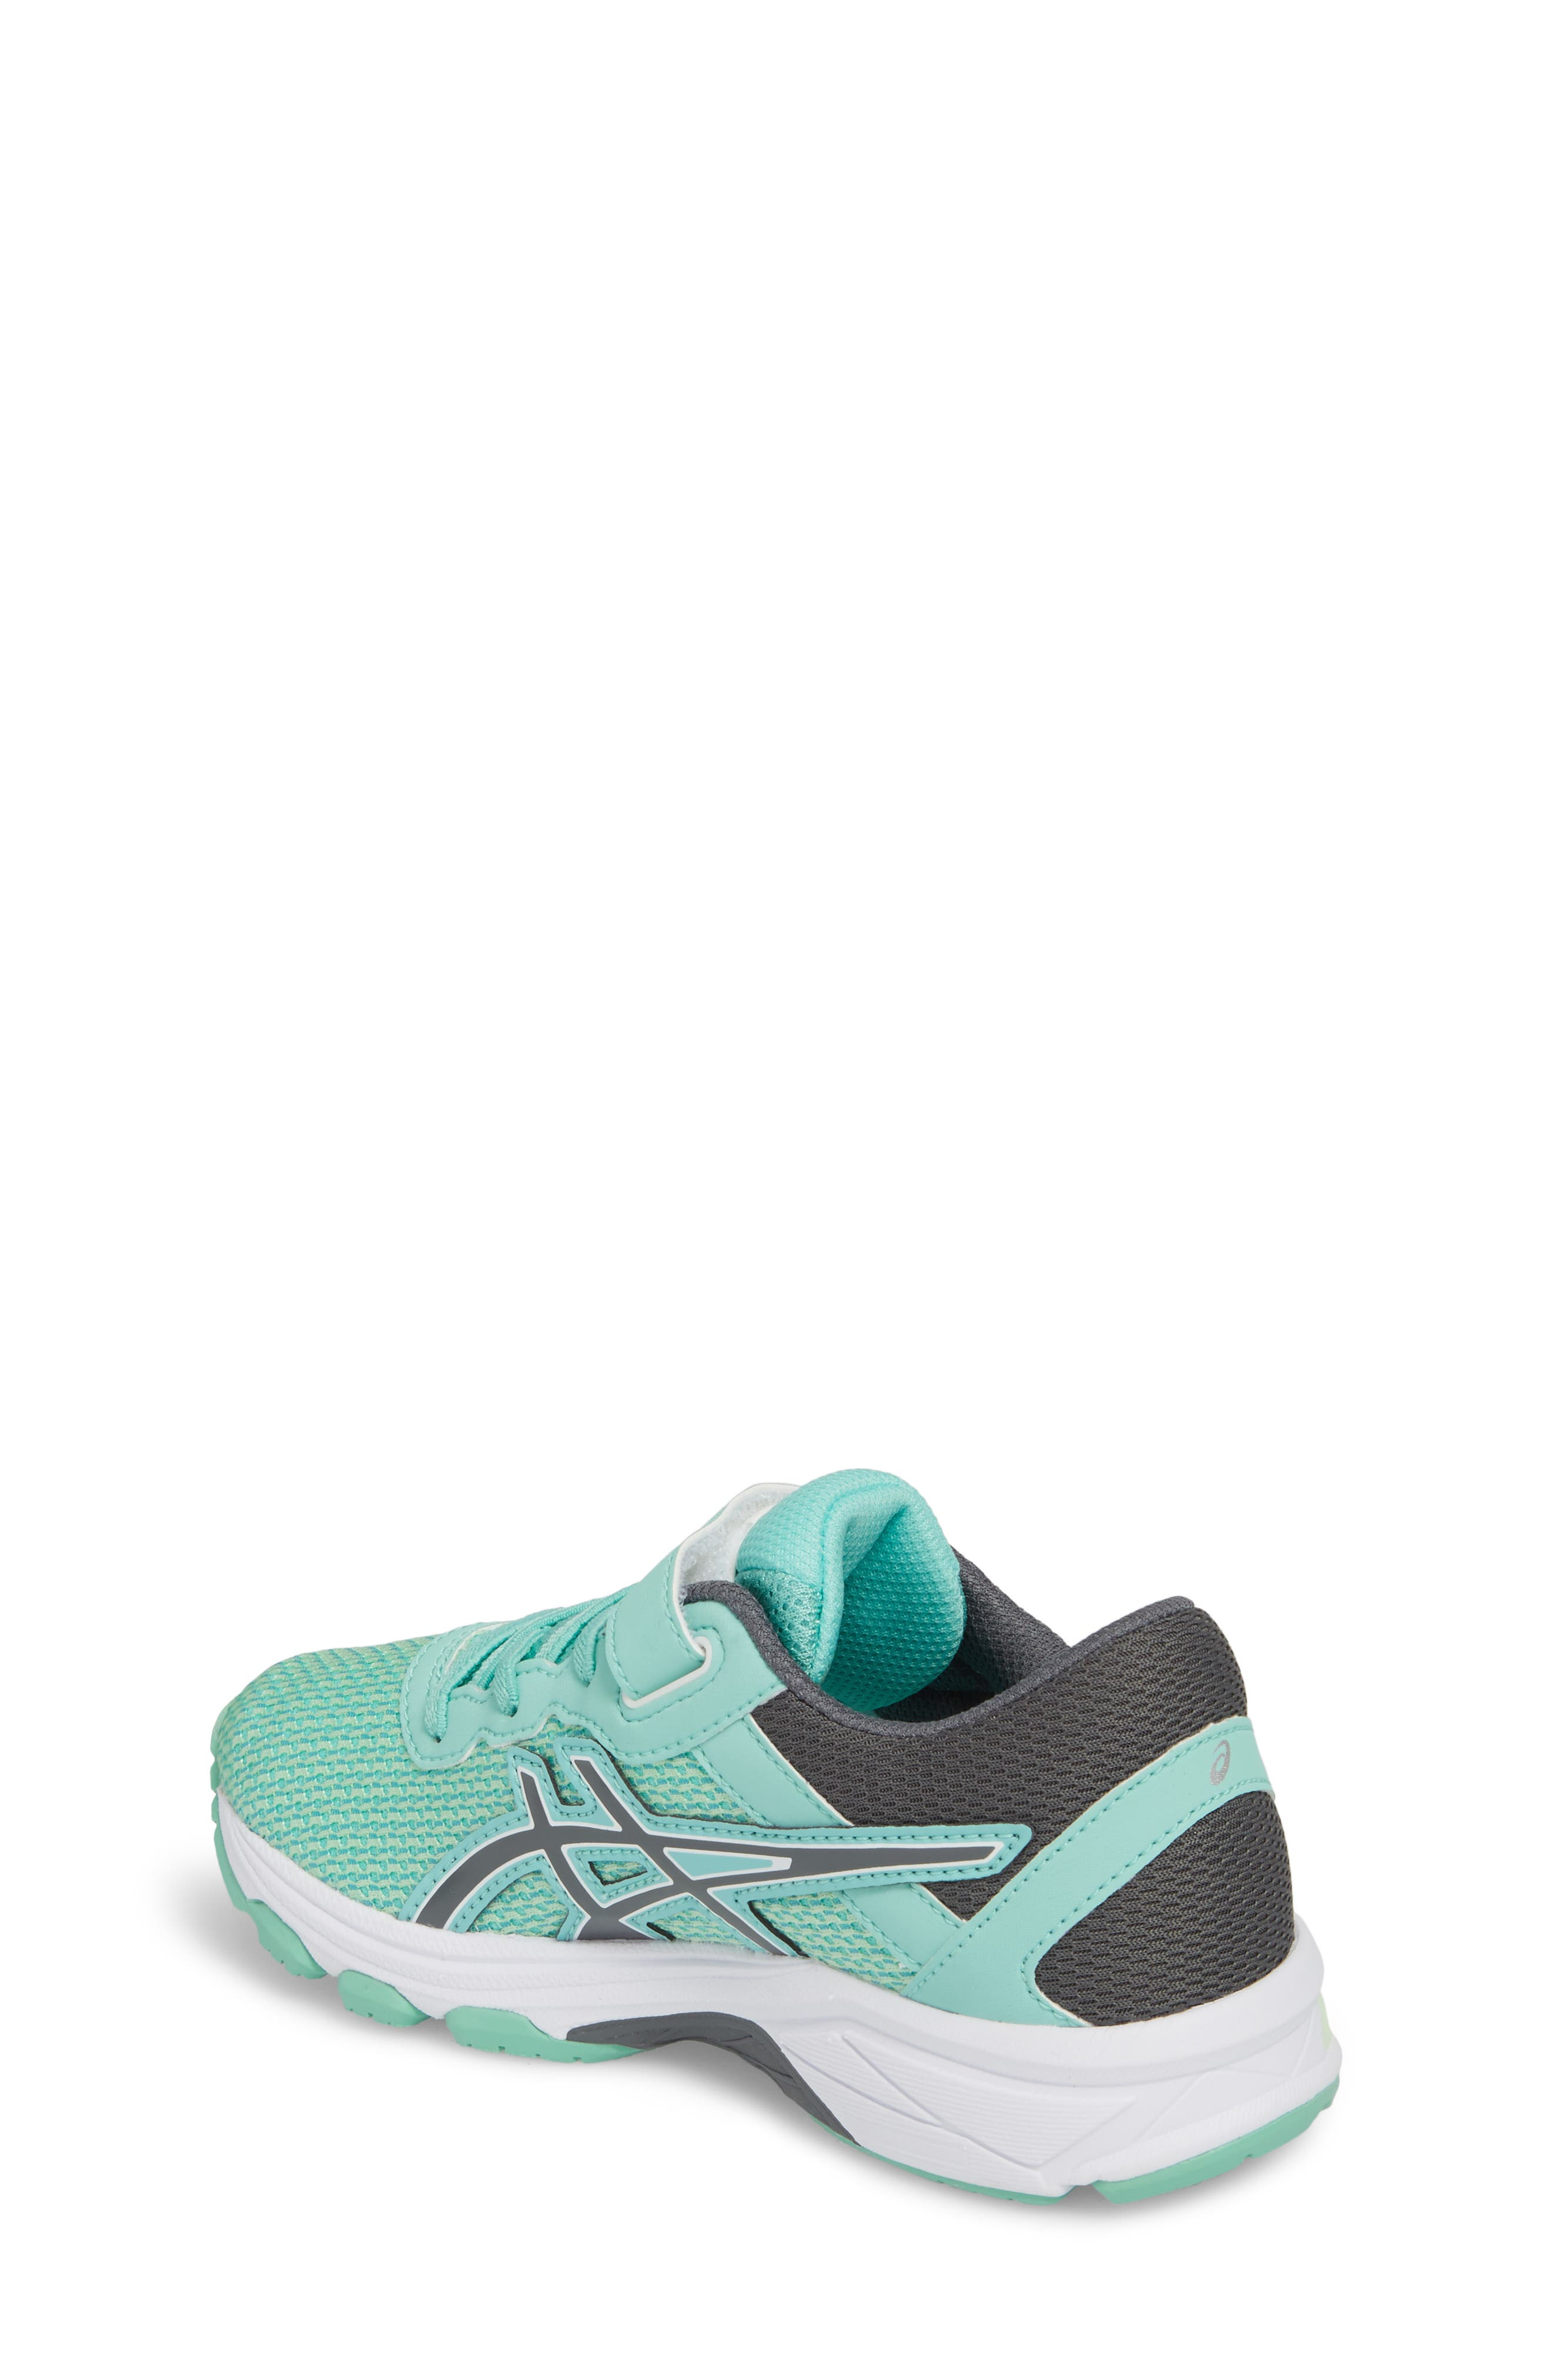 Asics GT-1000<sup>™</sup> 6 PS Sneaker,                             Alternate thumbnail 2, color,                             Carbon/ Opal Green